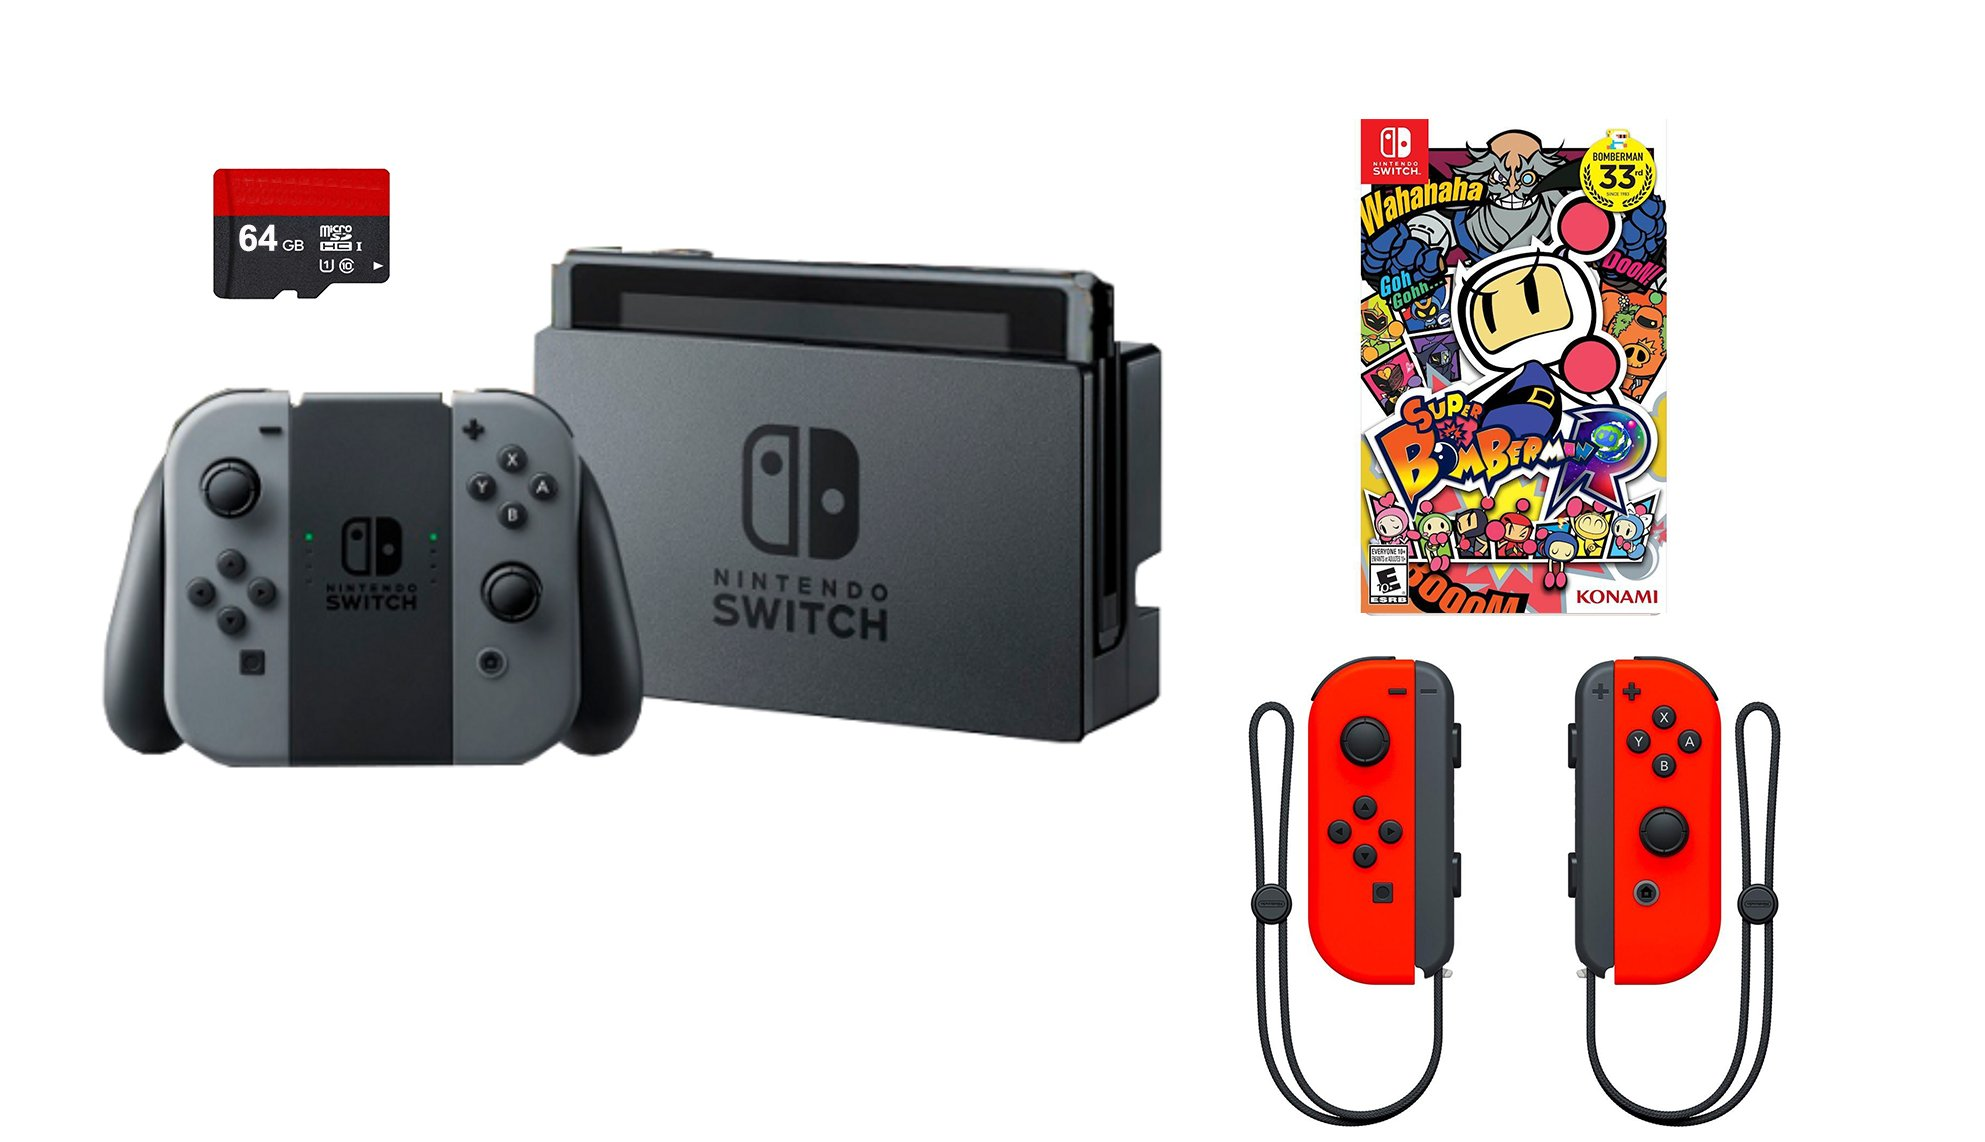 Nintendo Switch 4 items Bundle:Nintendo Switch 32GB Console Gray Joy-con,64GB Micro SD Memory Card and an Extra Pair of Nintendo Joy-Con (L/R) Wireless Controllers Neon Red,Super Bomberman R